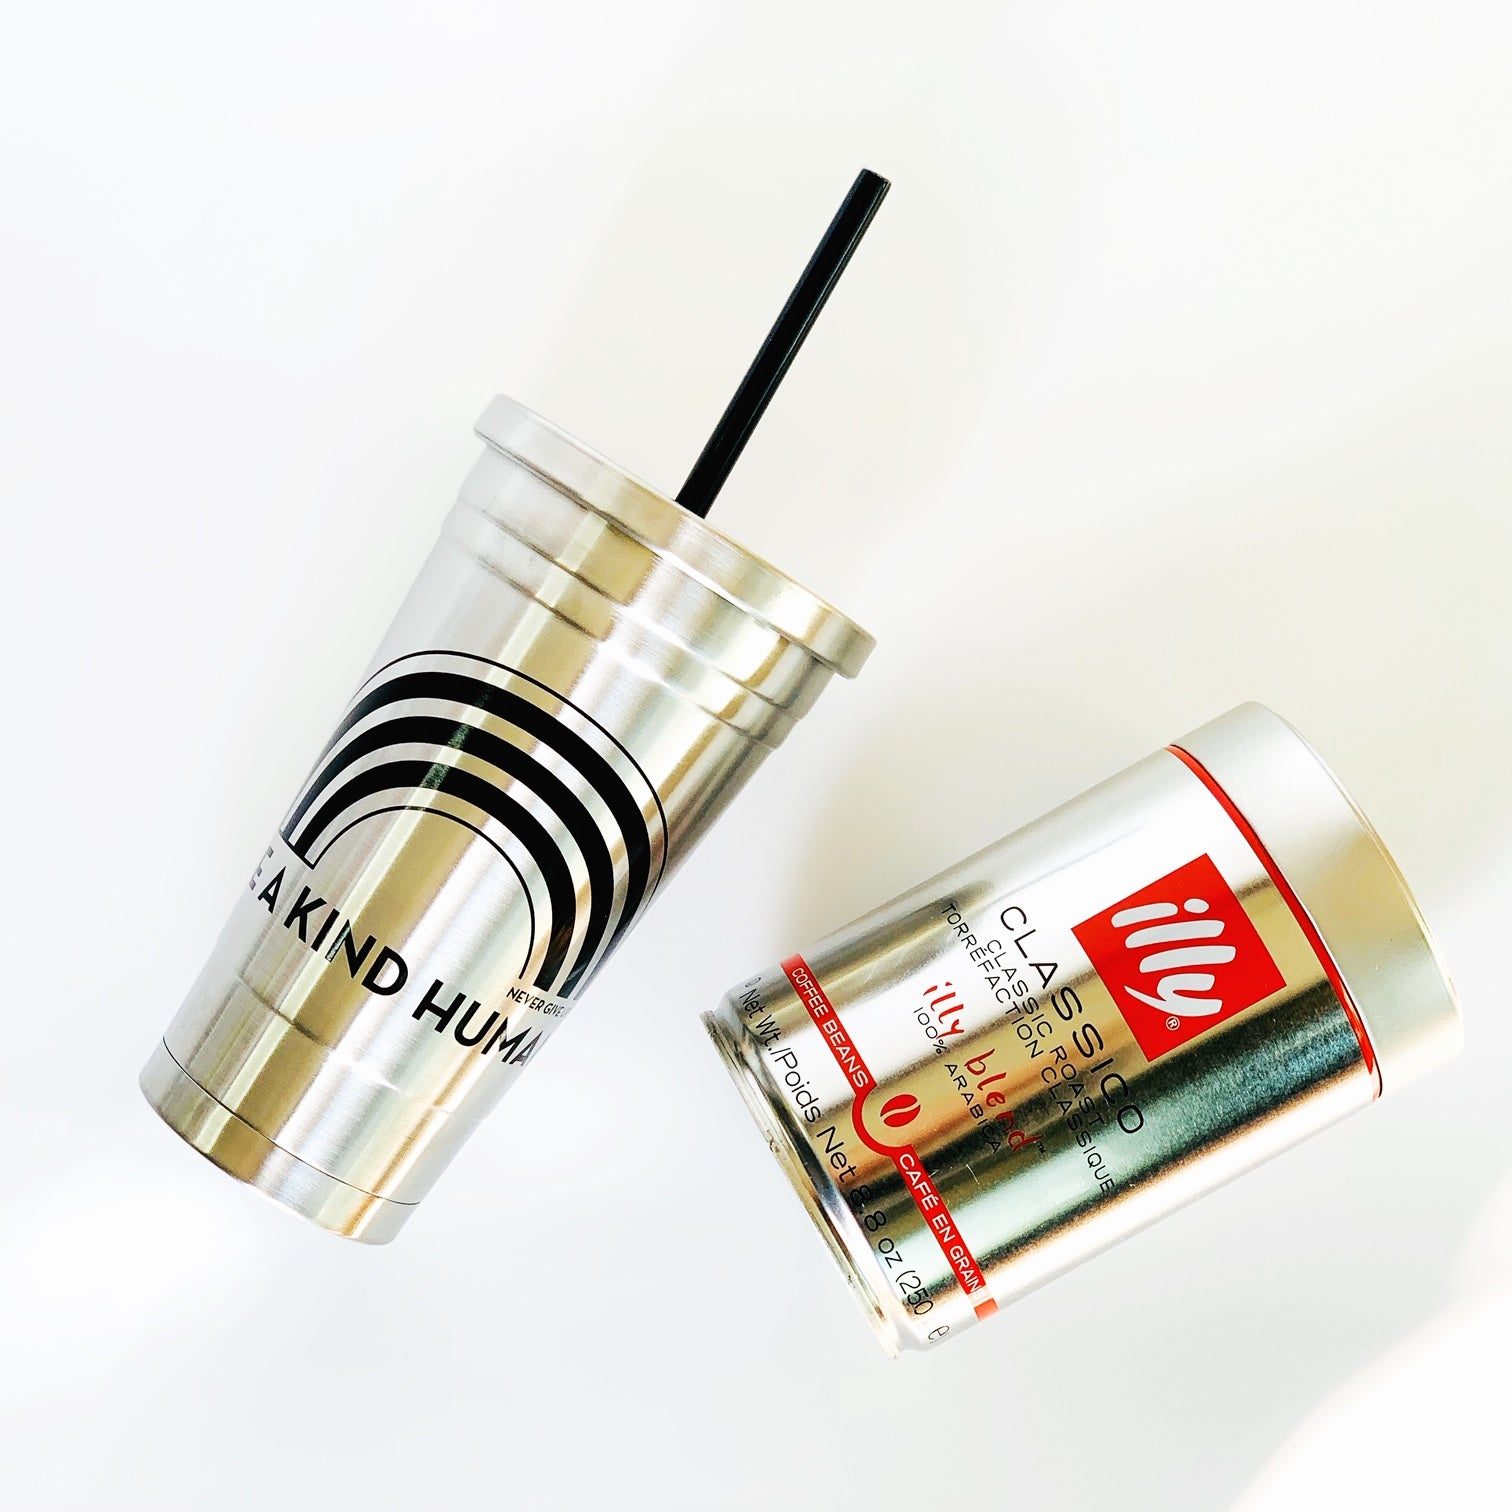 BE A KIND HUMAN STAINLESS STEEL TUMBLER